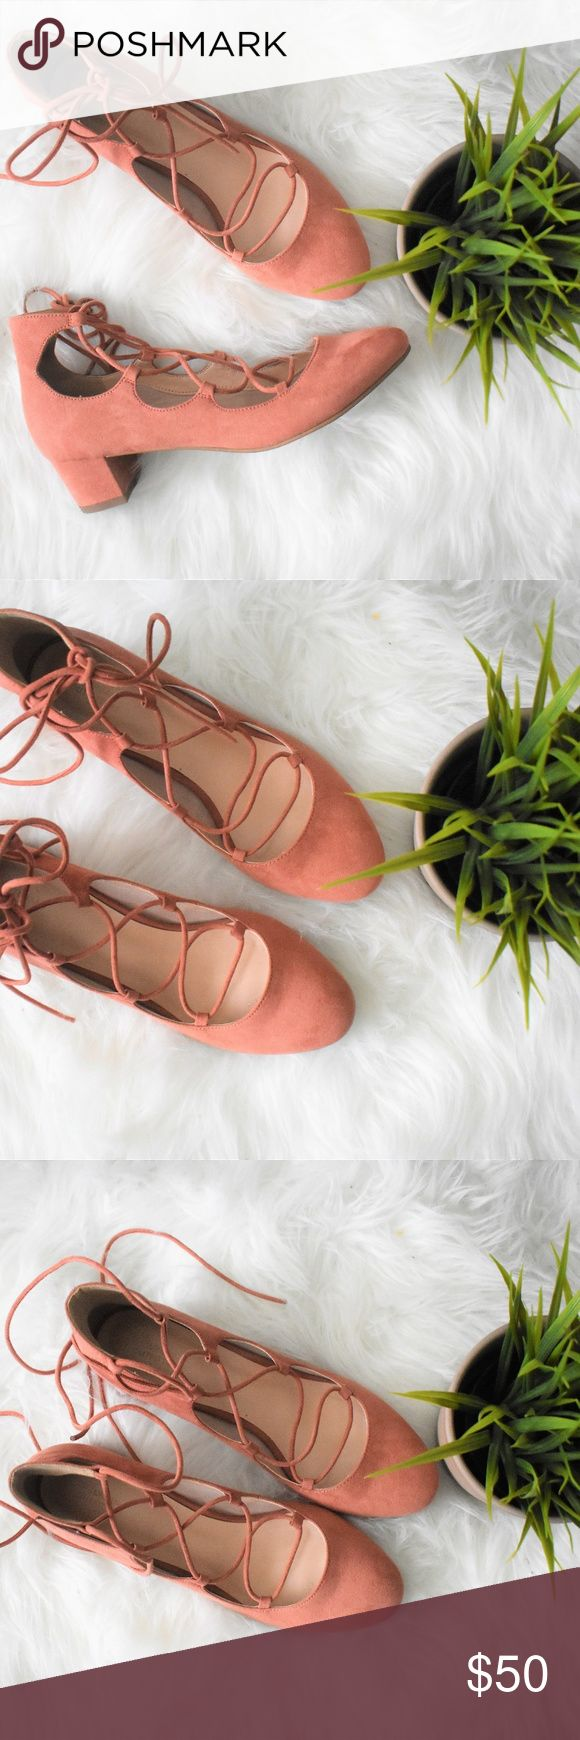 Lace Up Pink Urban Outfitters Heels Gorgeous suede heels with lace up detail in a size 38, equivalent to a US 7.5-8. I would say these fit like a 7.5. Great condition, only worn once or twice! A perfect spring shoe with about a 1 inch heel. Urban Outfitters Shoes Heels